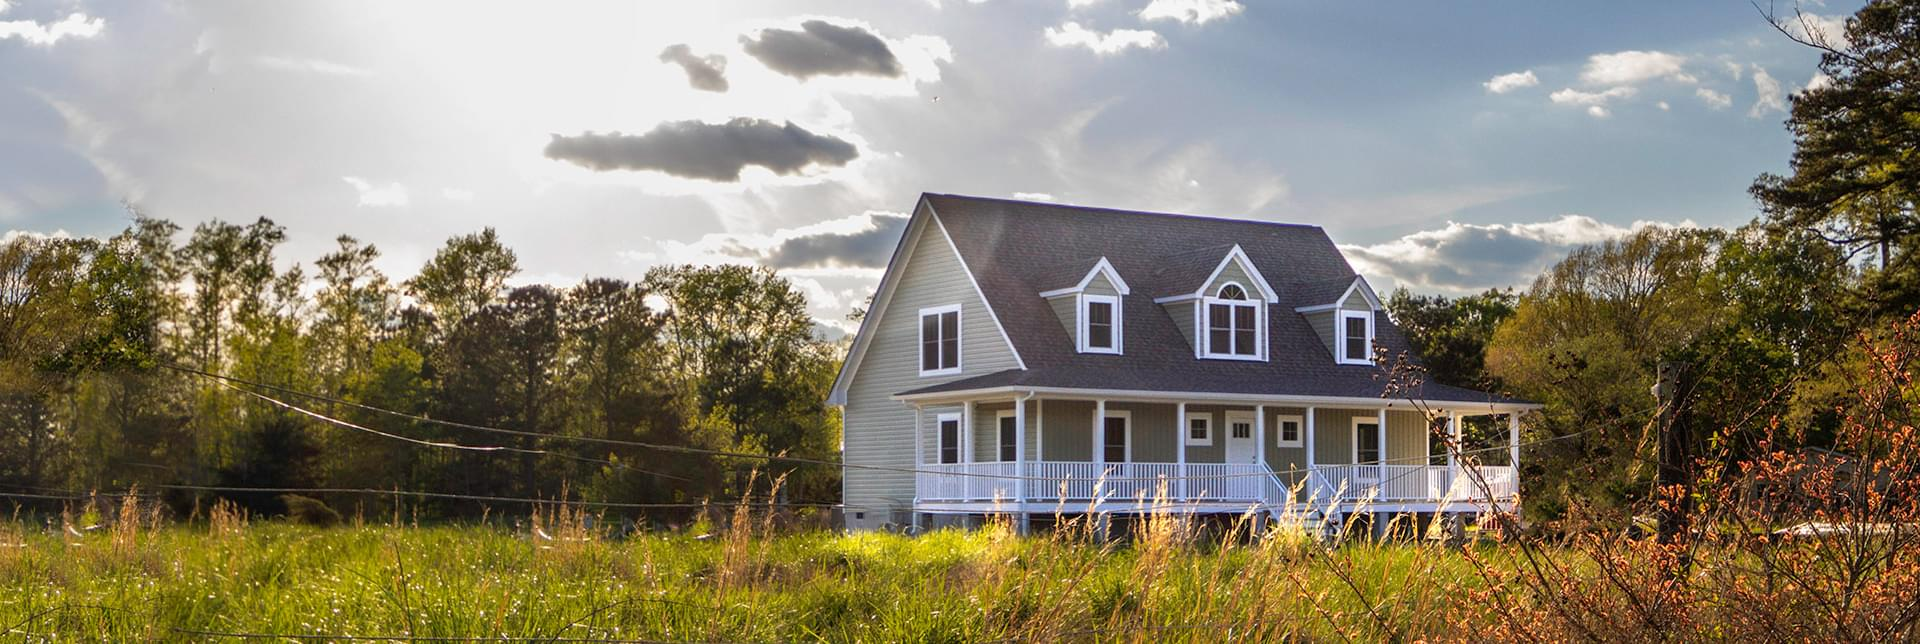 New Homes in Chesterfield County VA